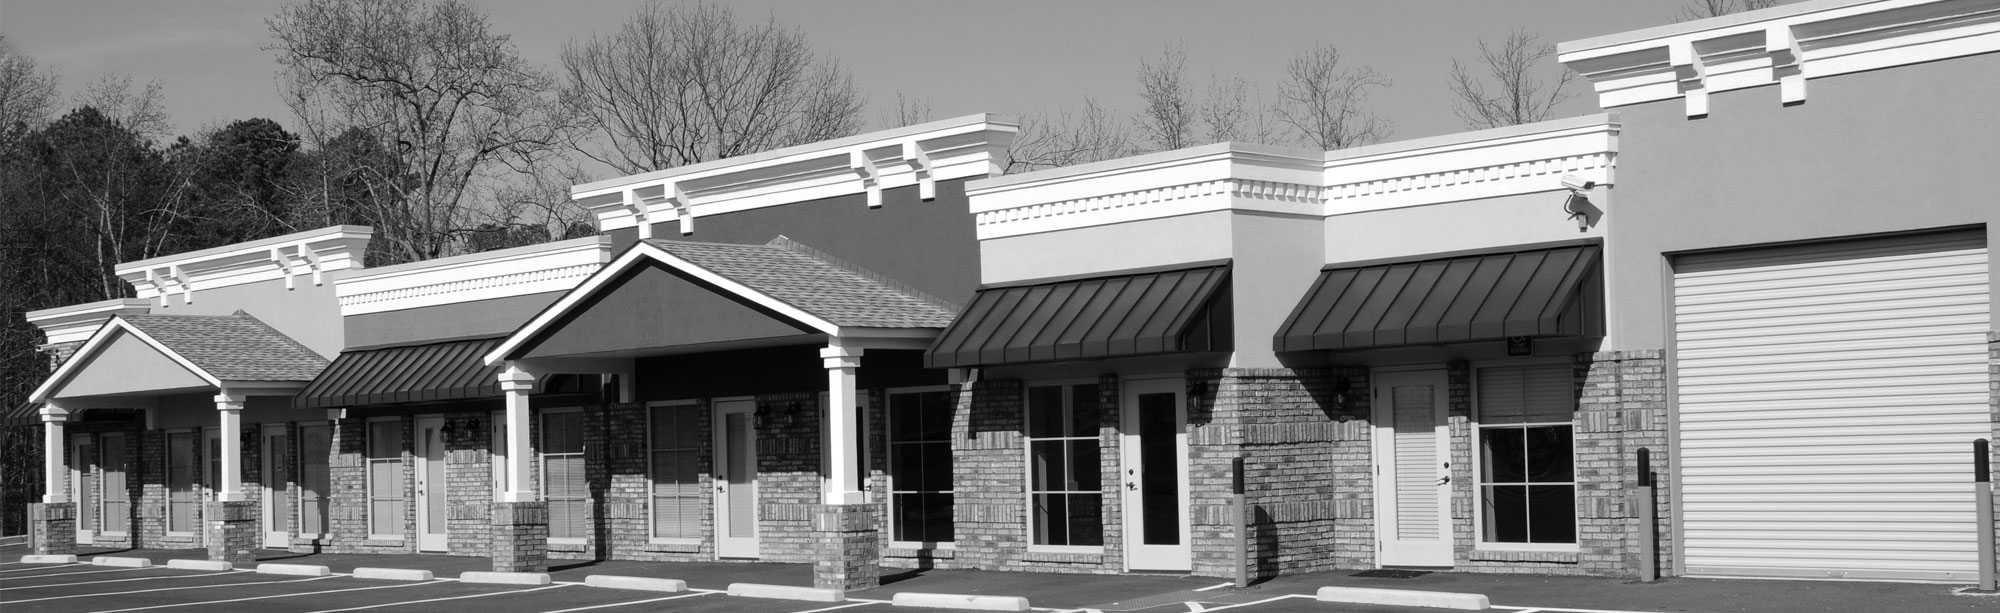 Kernersville Commercial Property Management